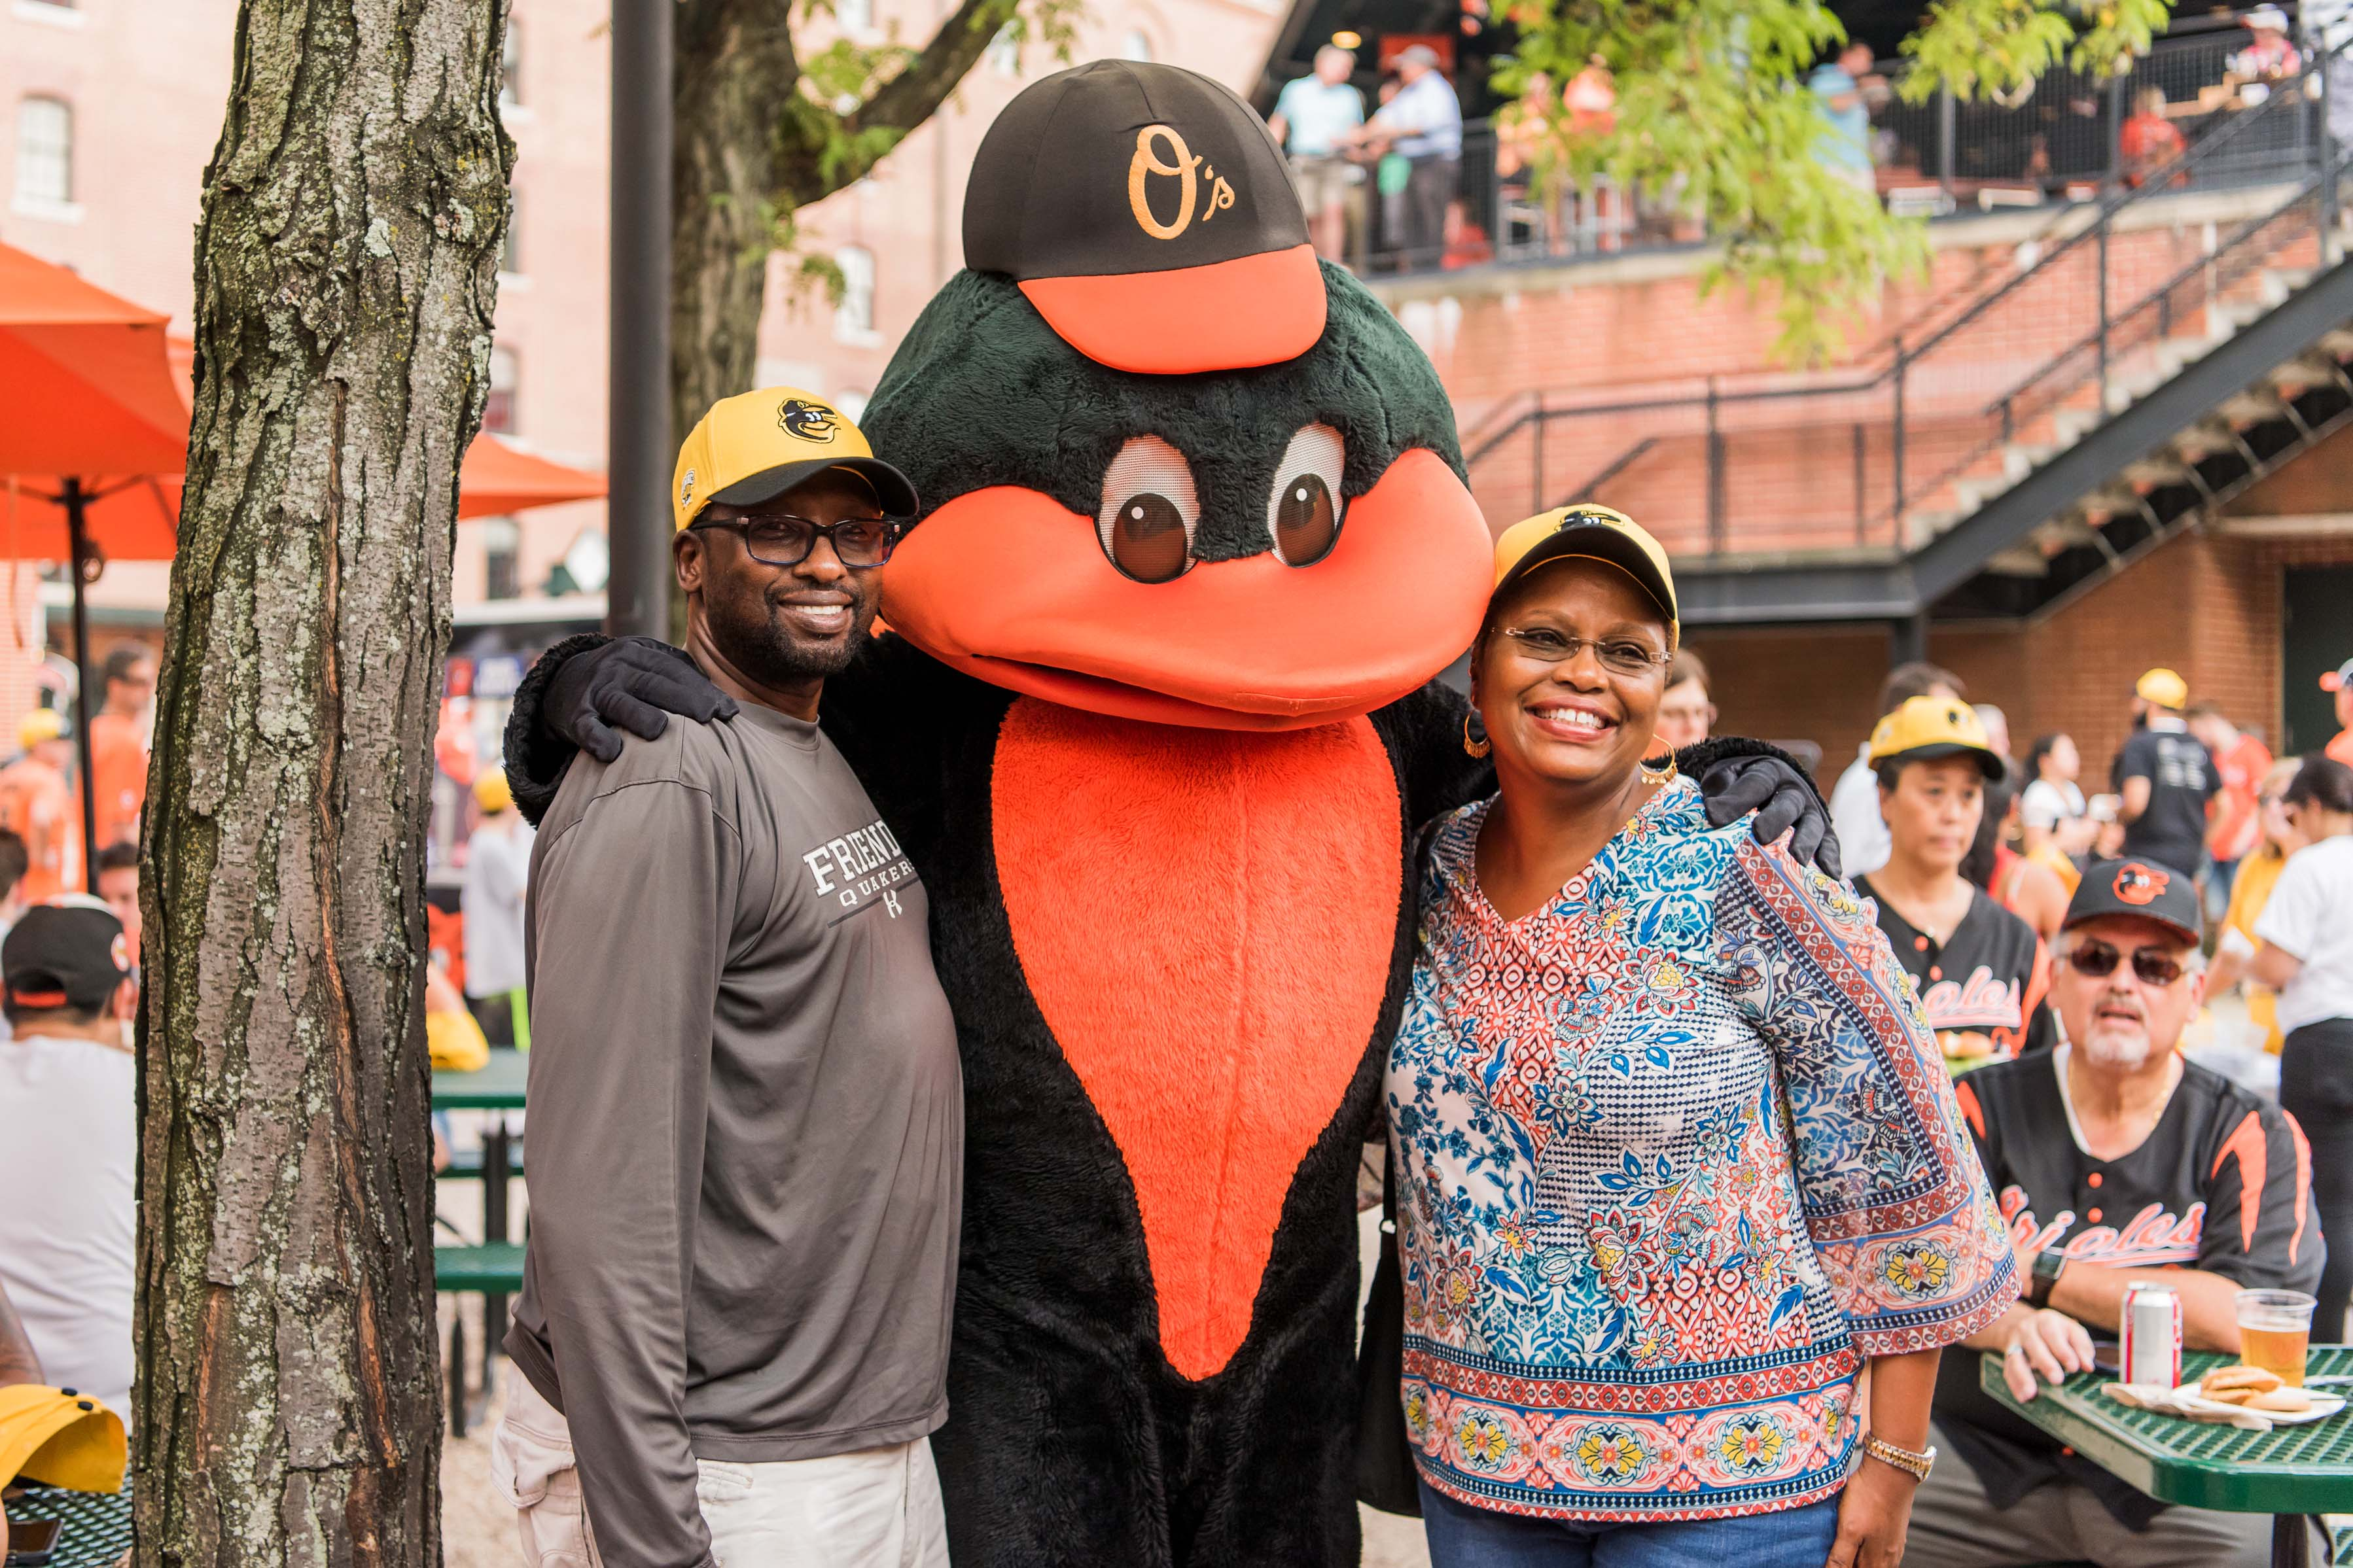 Orioles mascot poses with fans